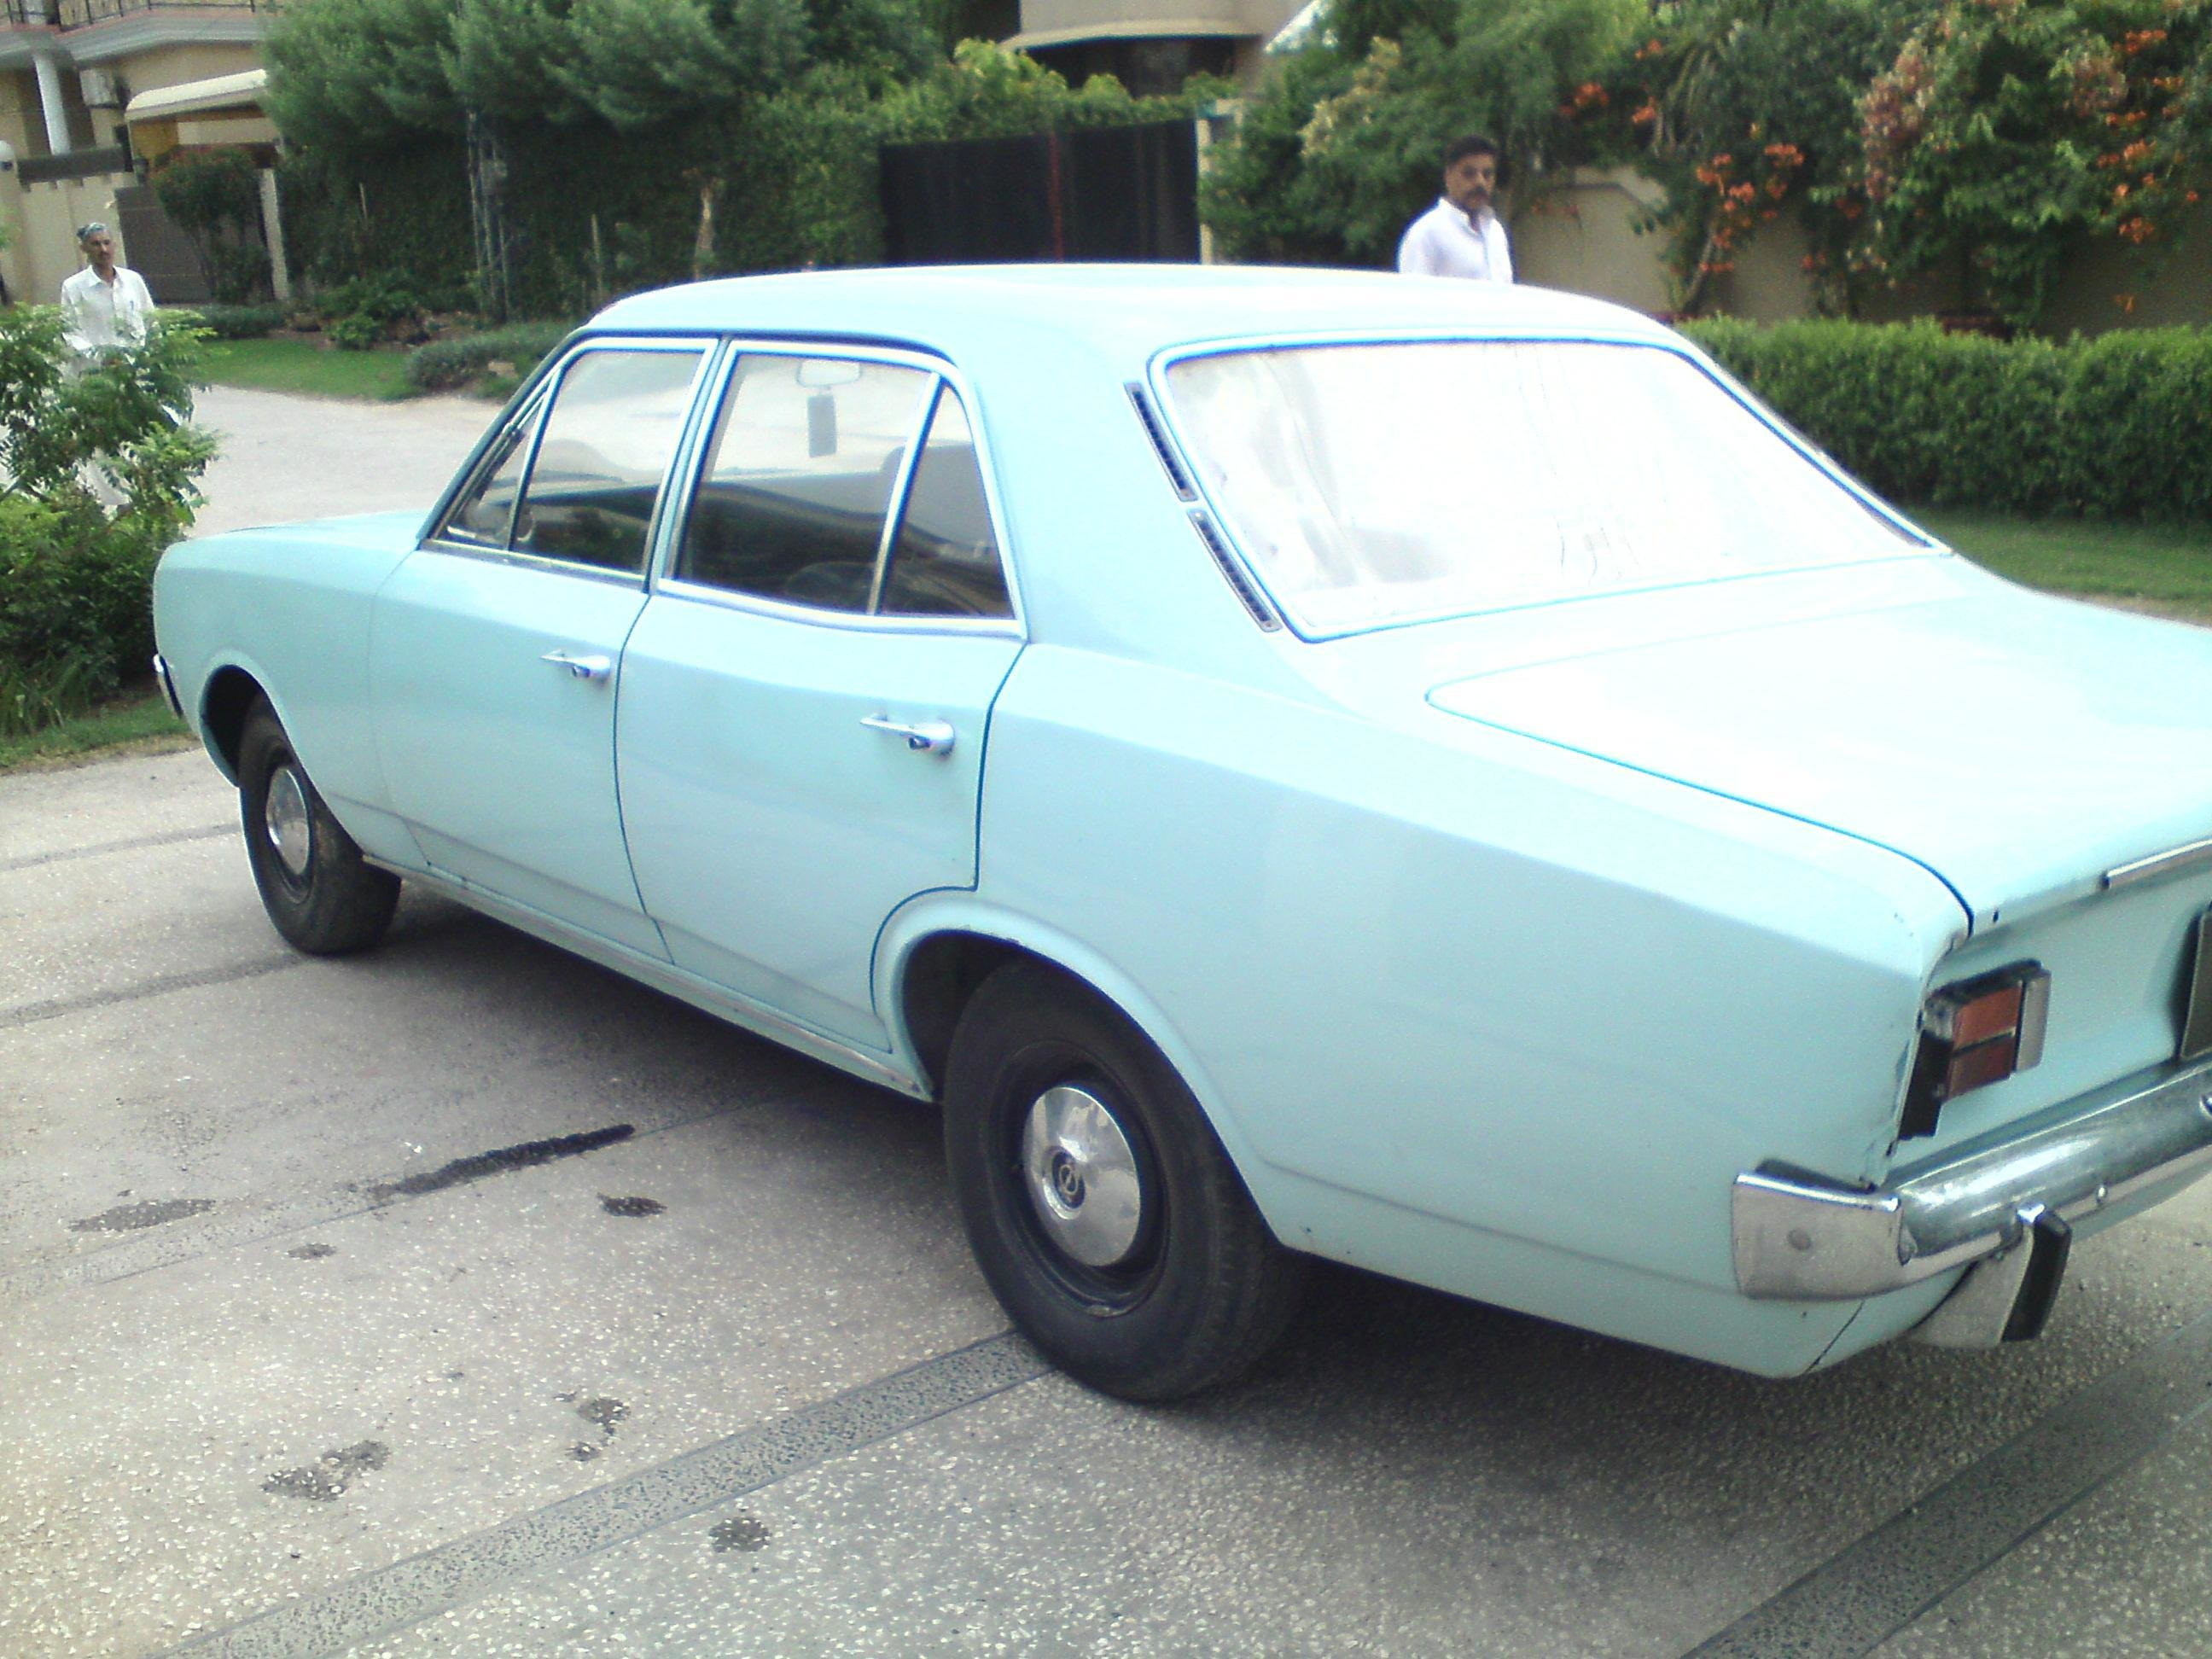 New Gustavao 1967 Opel Rekord Specs Photos Modification Info On This Month